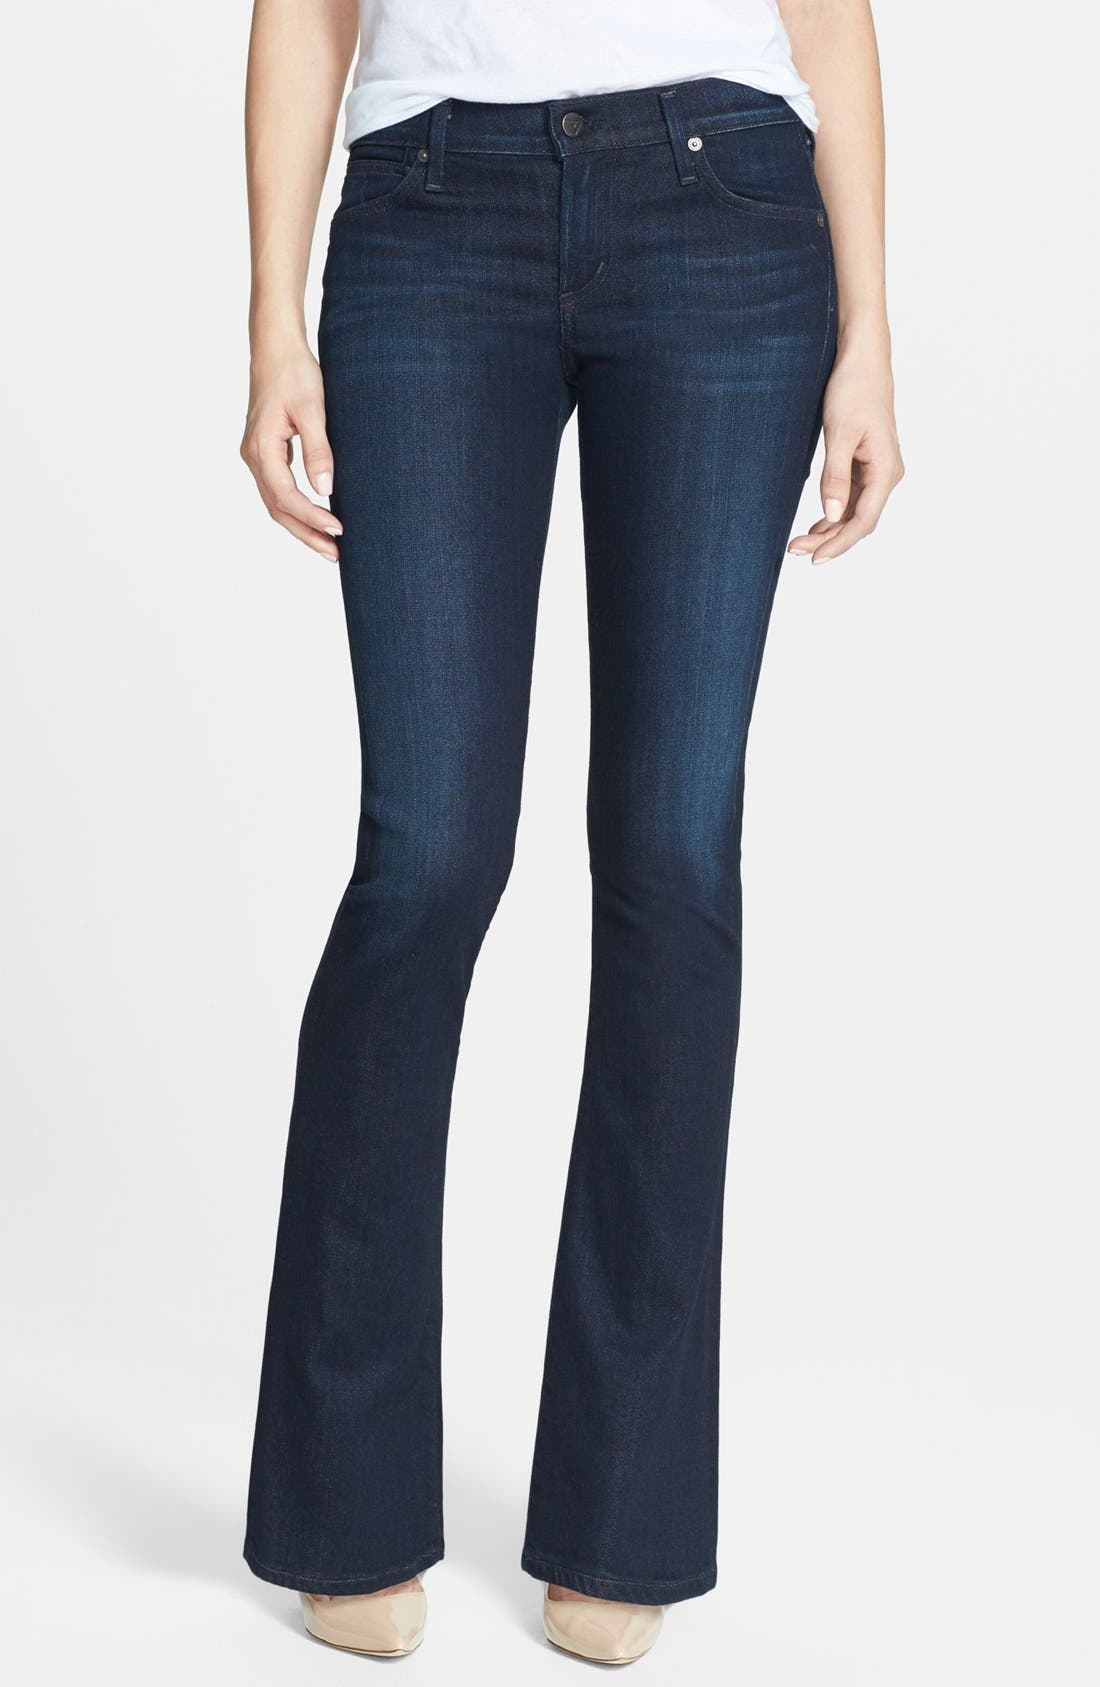 Alternate Image 1 Selected - Citizens of Humanity 'Emmanuelle' Bootcut Jeans (Space) (Petite)